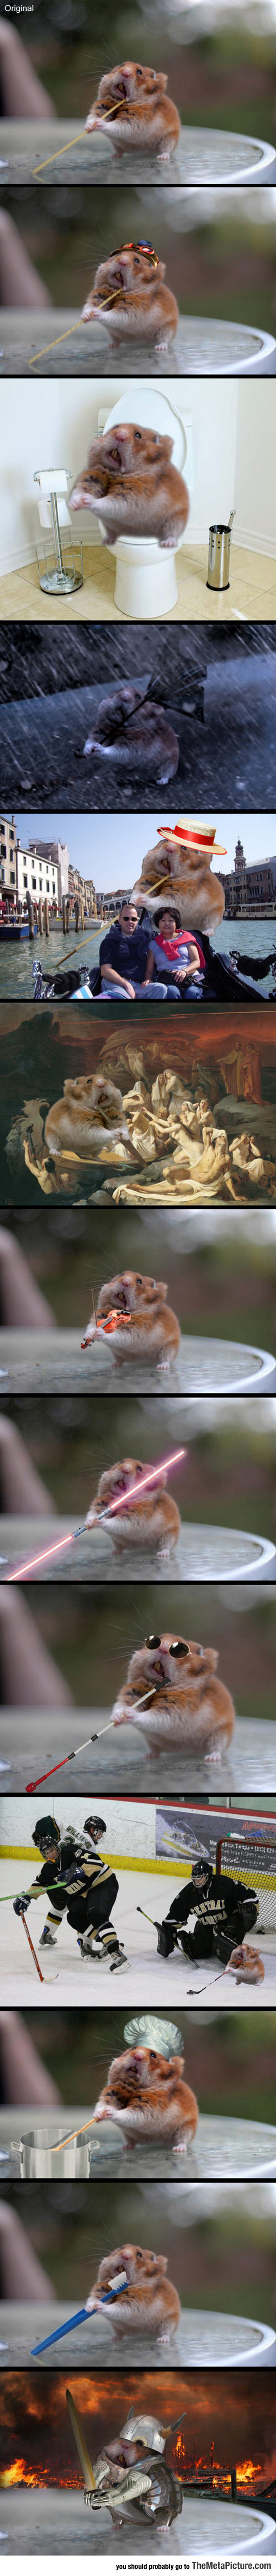 Just A Day In The Life Of Spaghetti Hamster